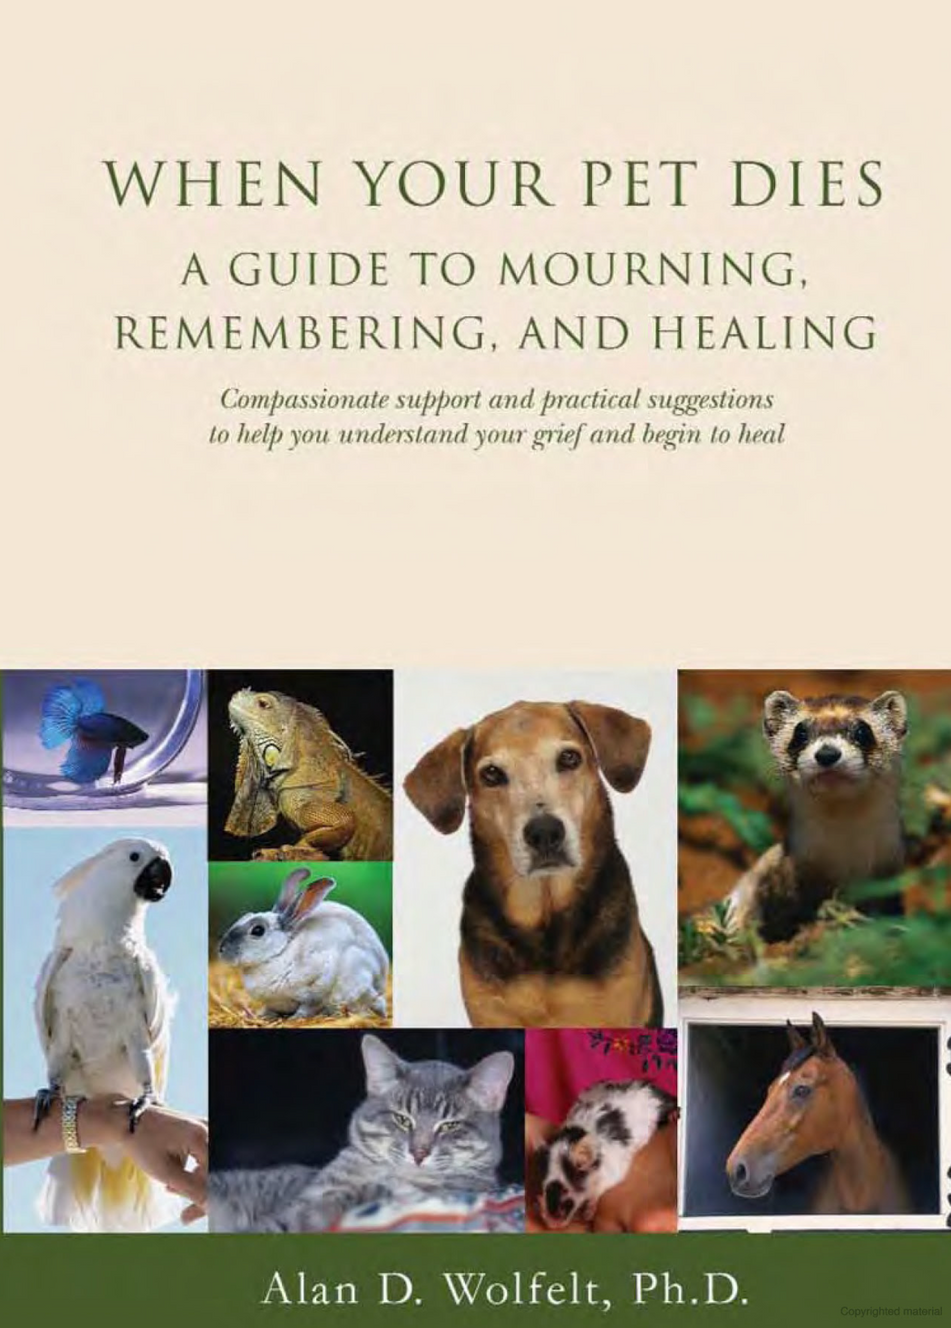 Recommended Reading - When Your Pet Dies